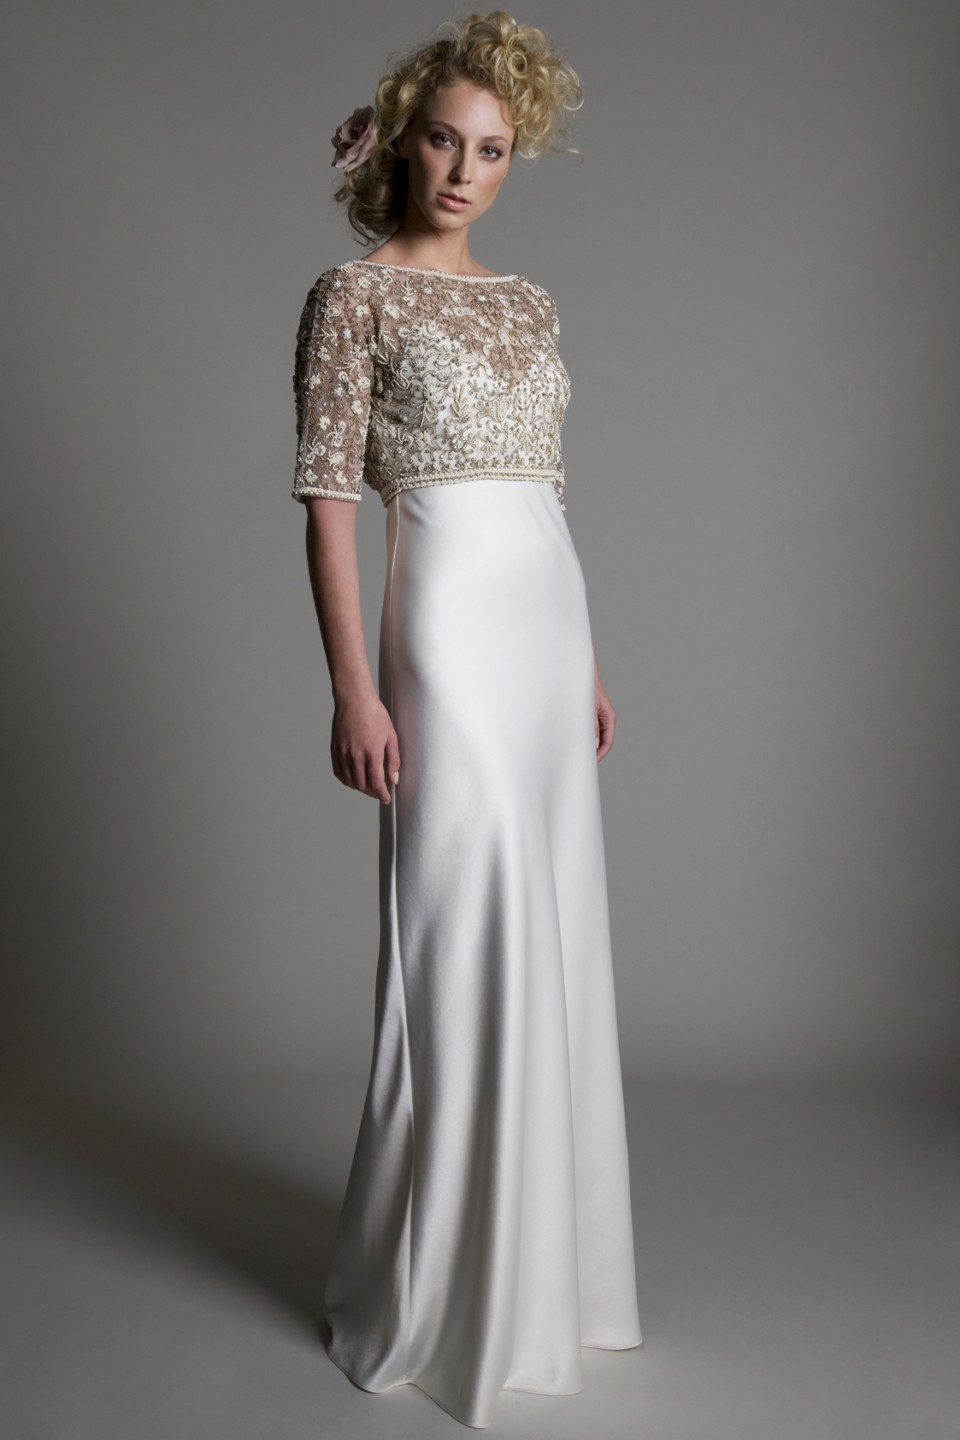 Kate halfpenny spring 2014 bridal collection the for Lace top silk bottom wedding dress